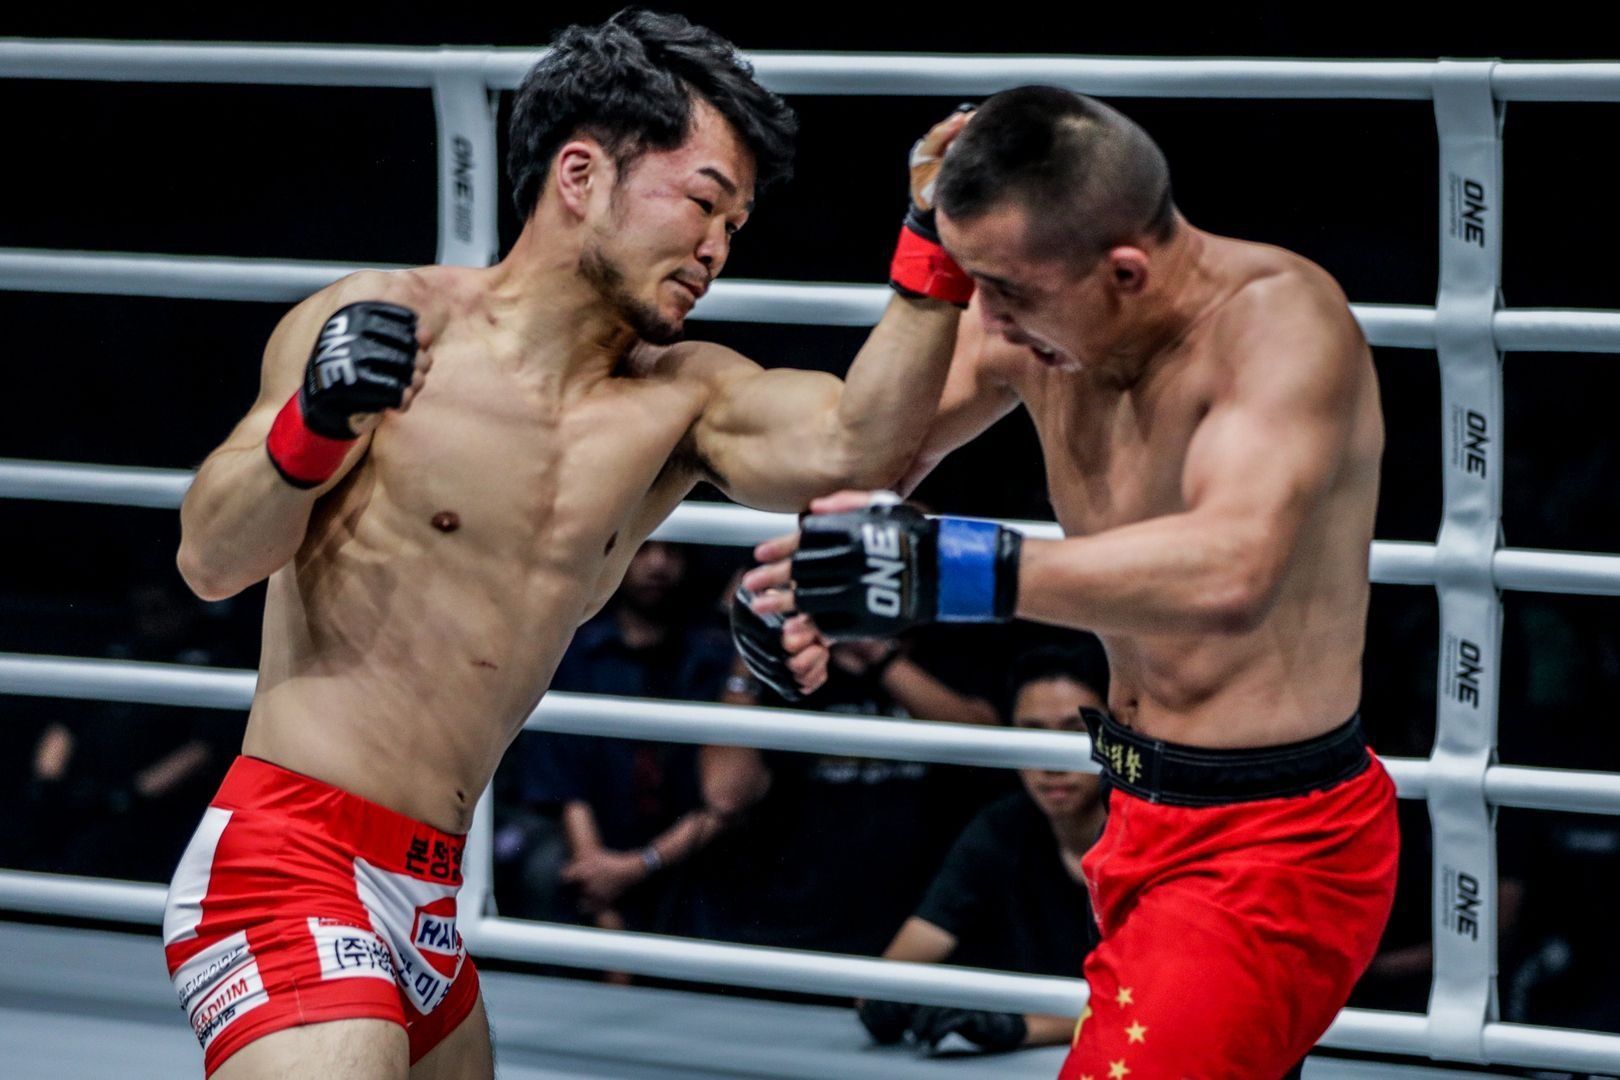 Dae Hwan Kim knocks out Ayideng Jumayi